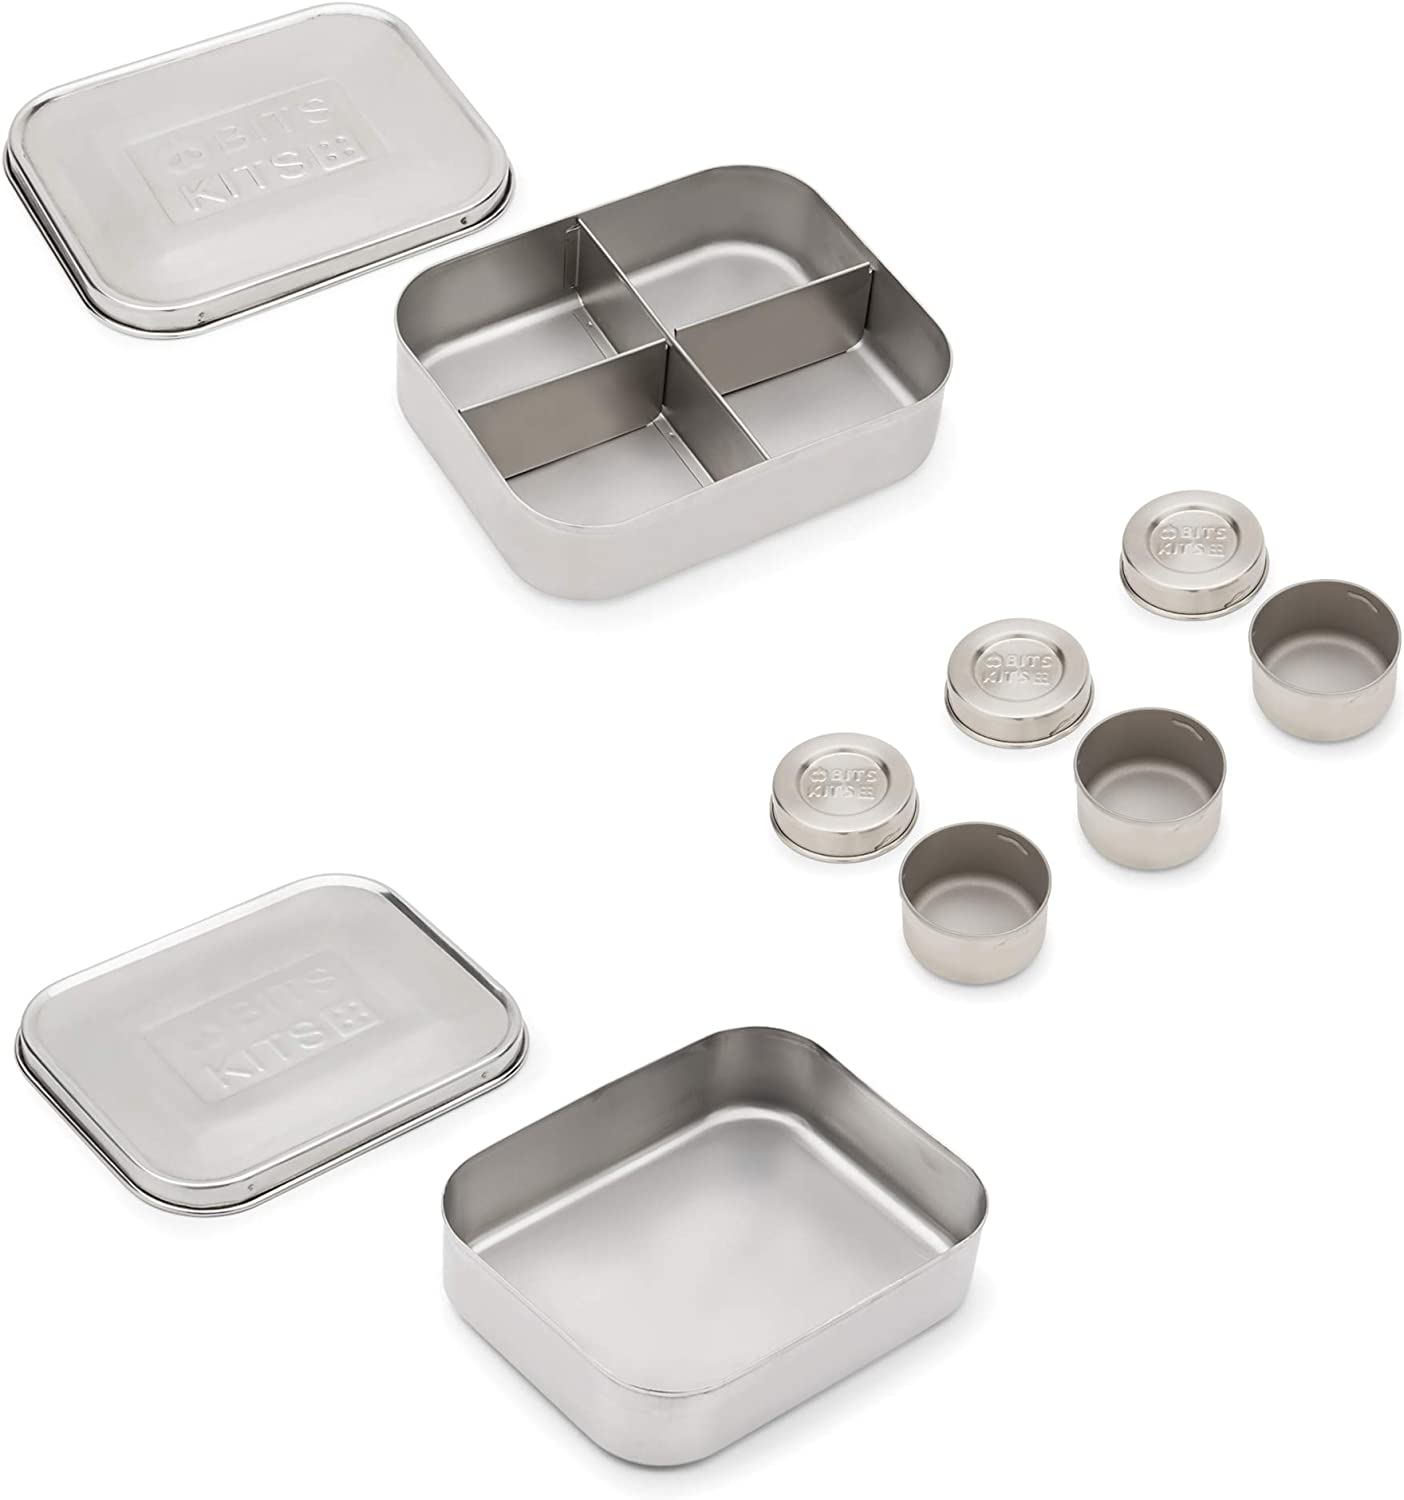 Bits Kits Bento Box Lunch and Condiment Containers Bundle for Kids and Adults, Set of 5, Stainless Steel